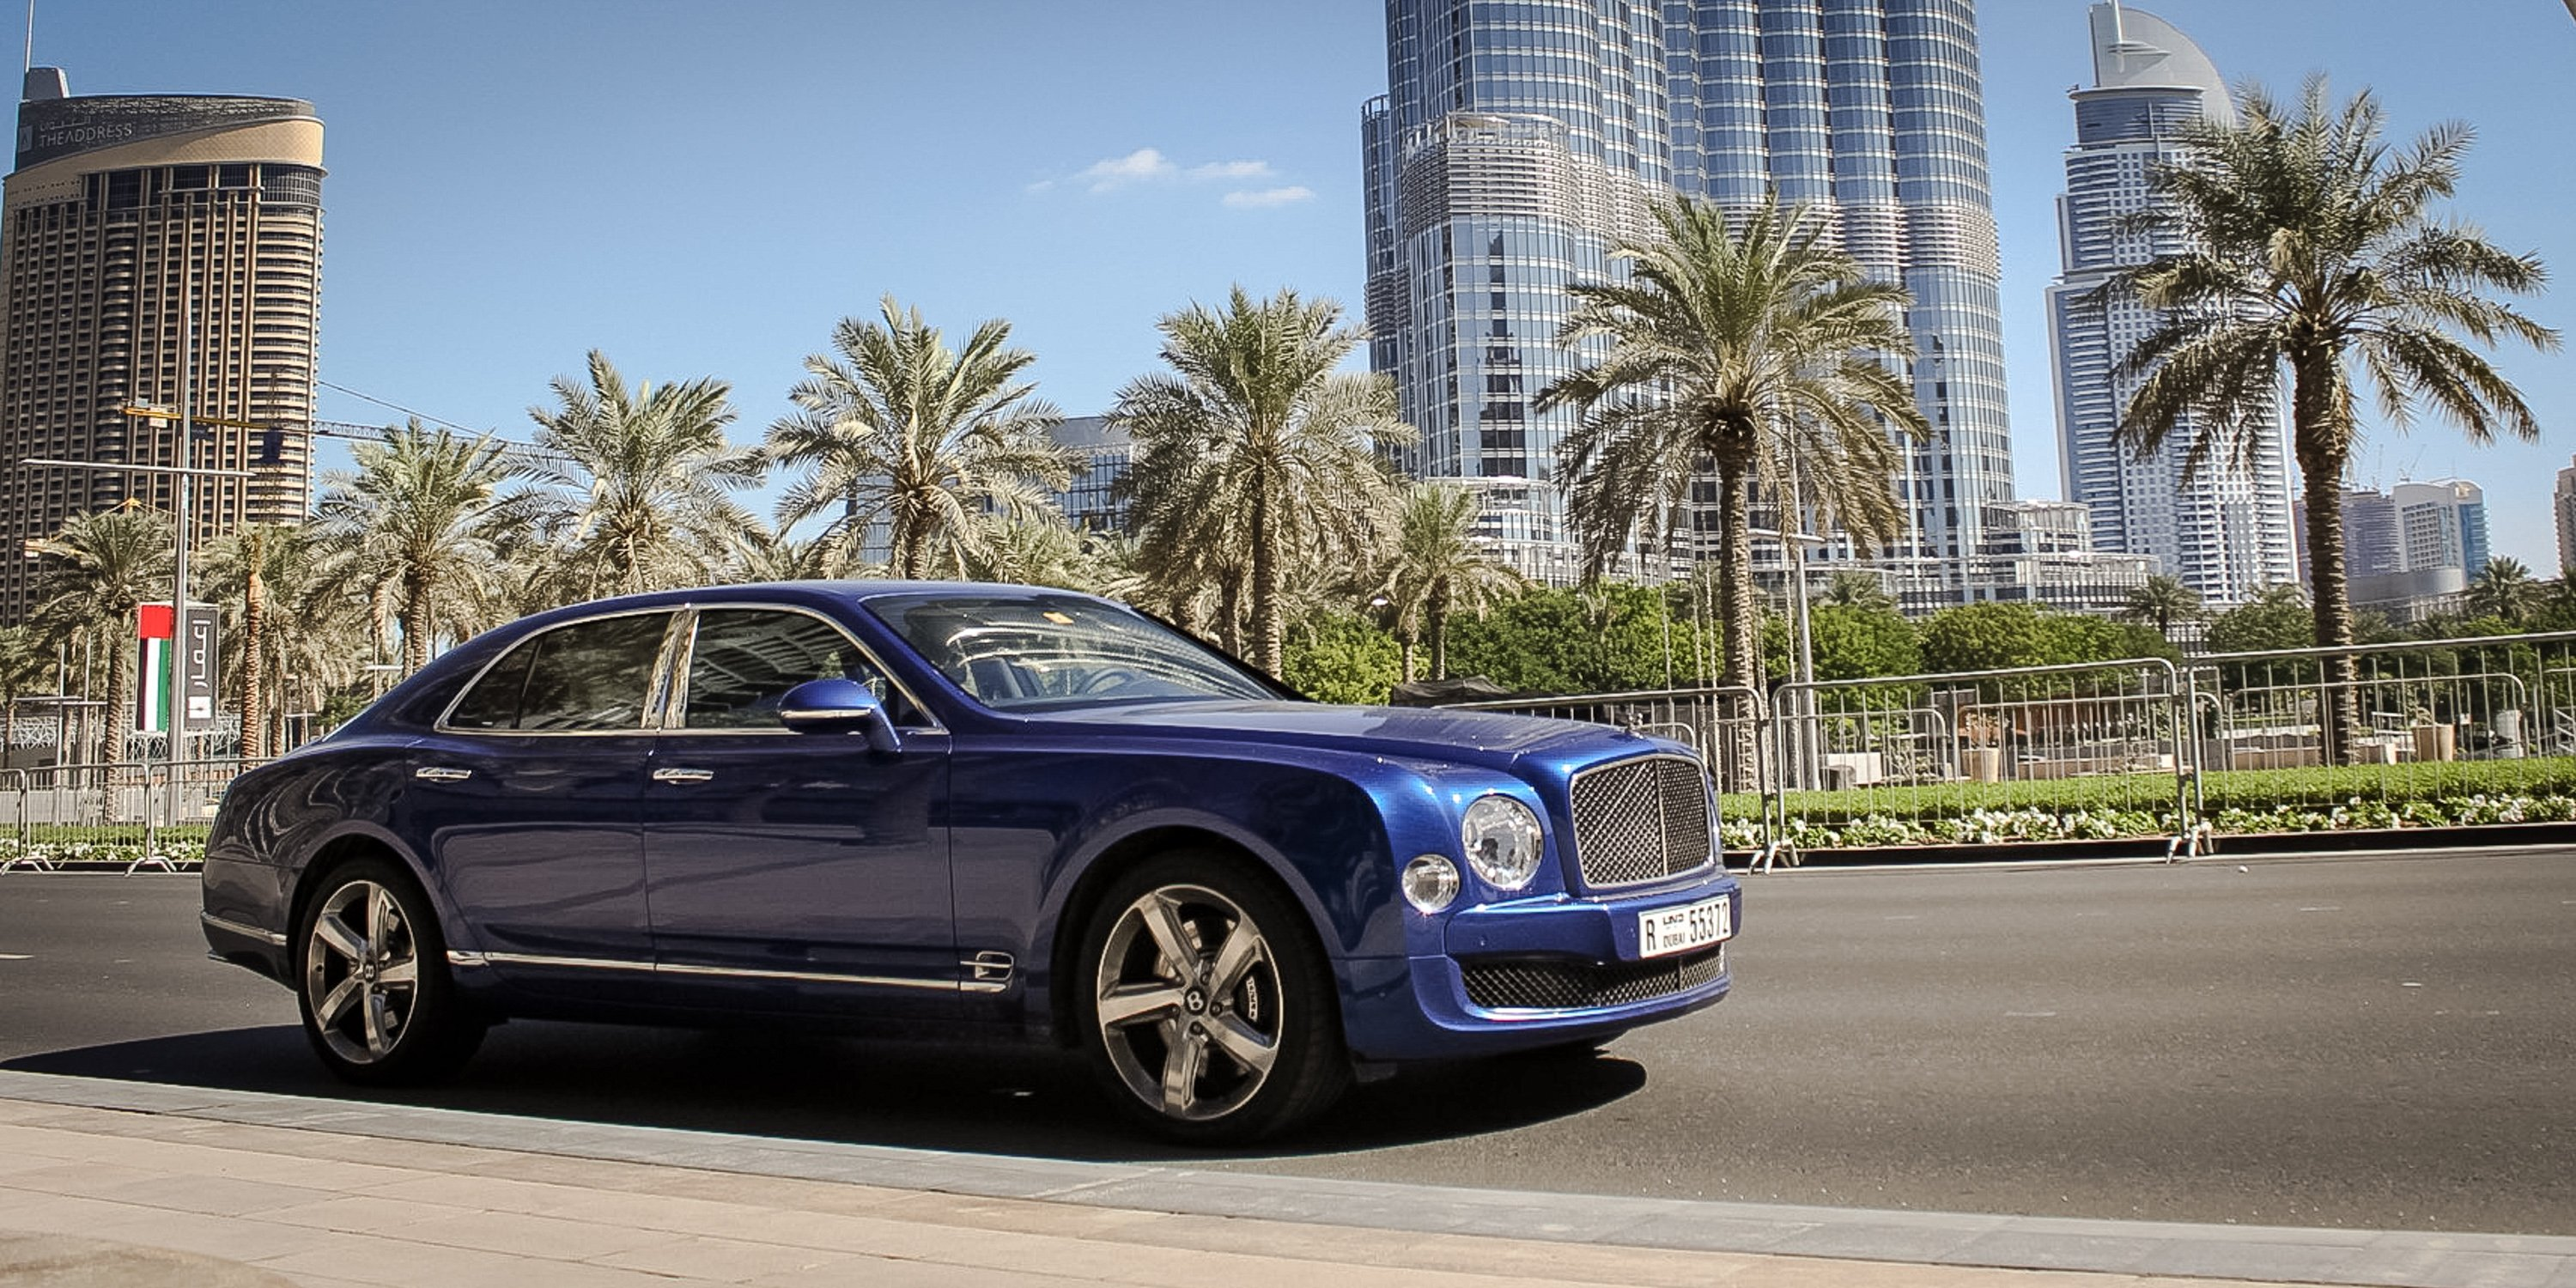 2016 Ford Gt Top Speed >> 2016 Bentley Mulsanne Speed Review : Abu Dhabi to Dubai - photos | CarAdvice